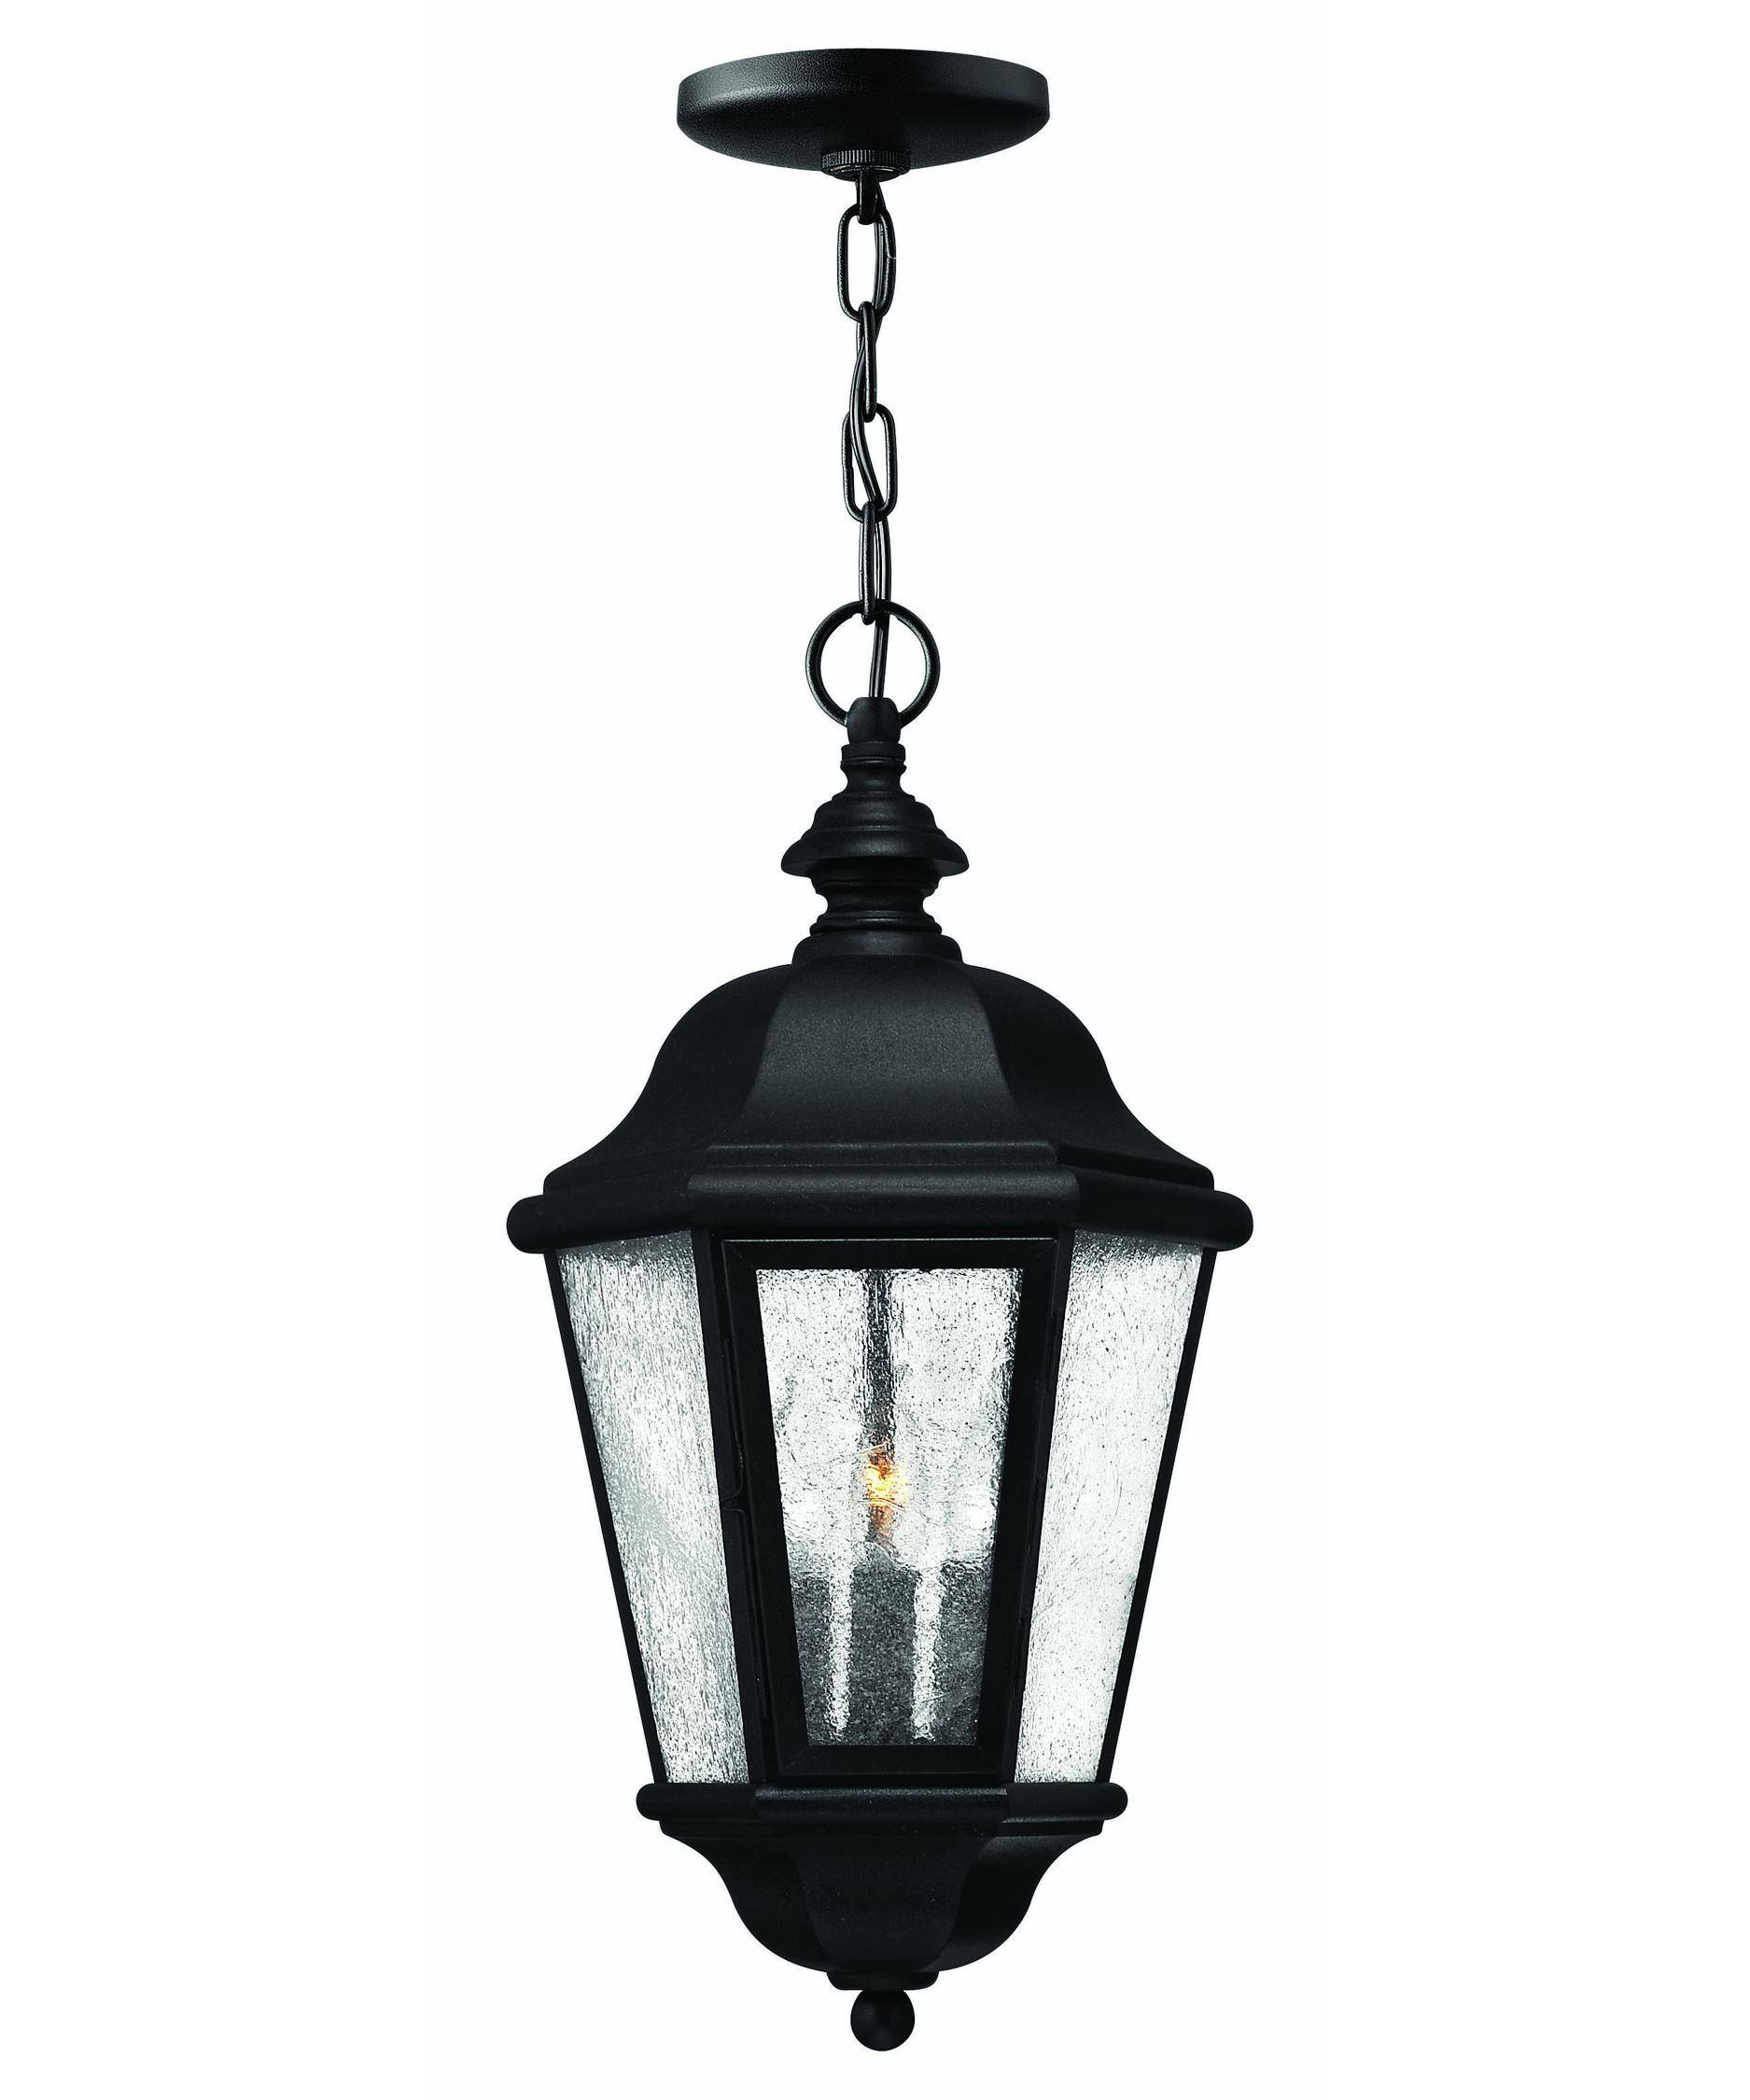 Hinkley Lighting 1672 Edgewater 10 Inch Wide 3 Light Outdoor Regarding Outside Pendant Lights (View 3 of 15)